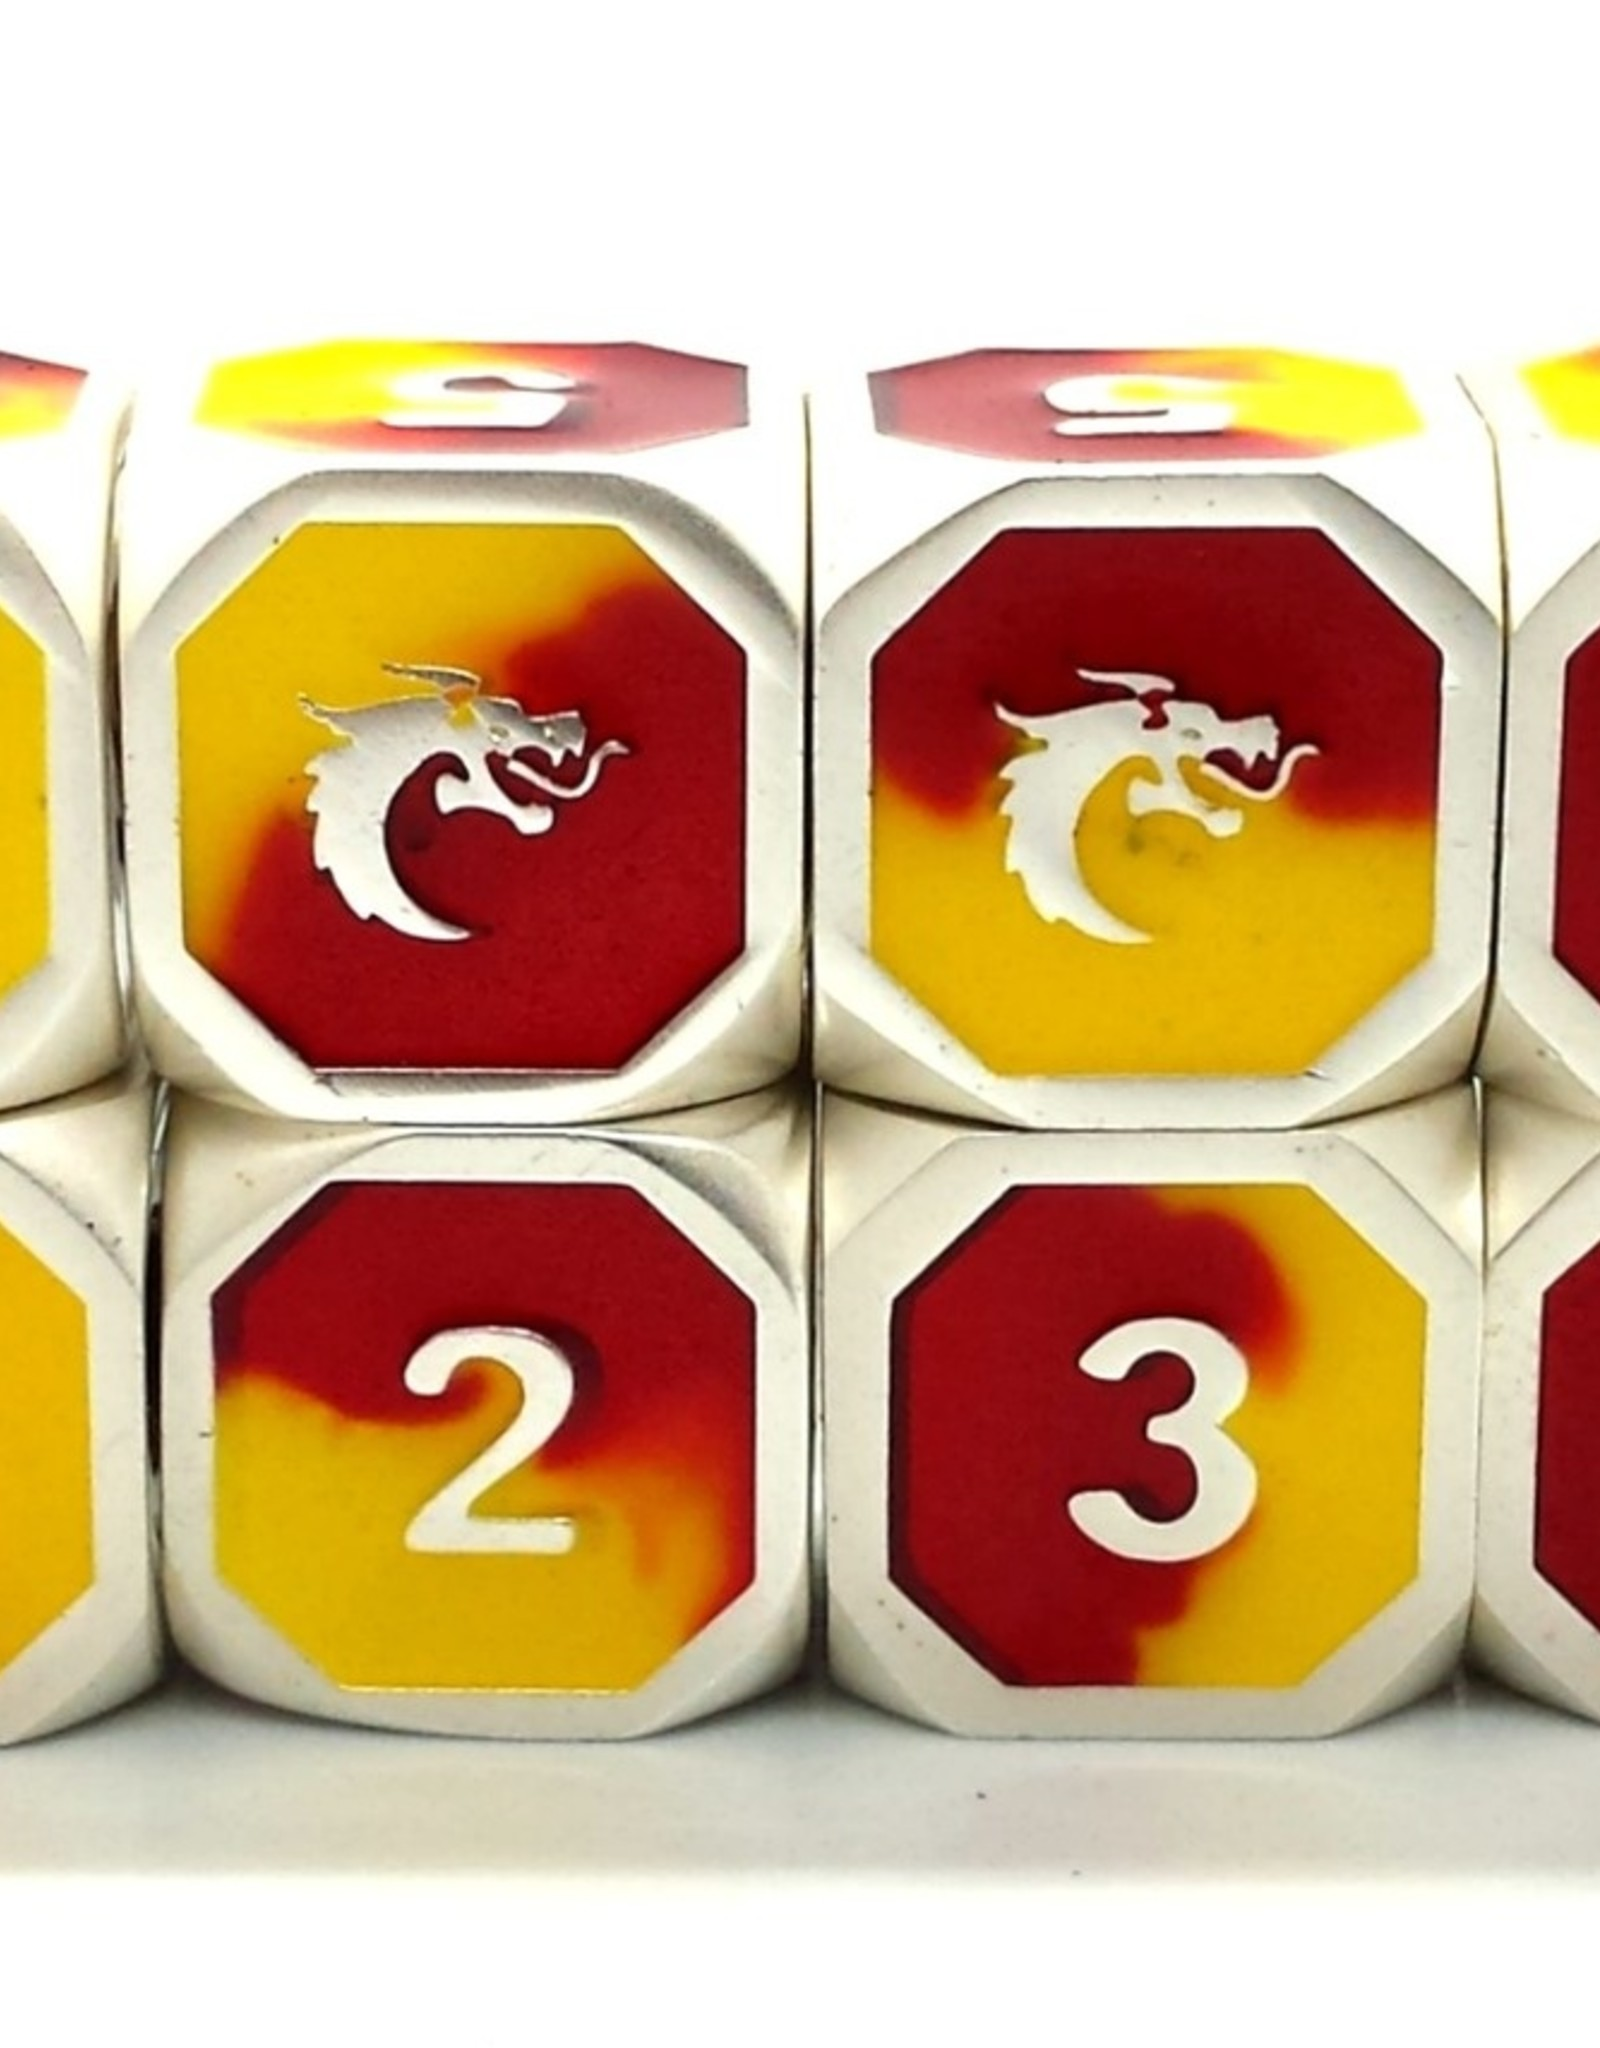 Old School Dice & Accesories Dragon Forged D6 Set Platinum Red & Yellow